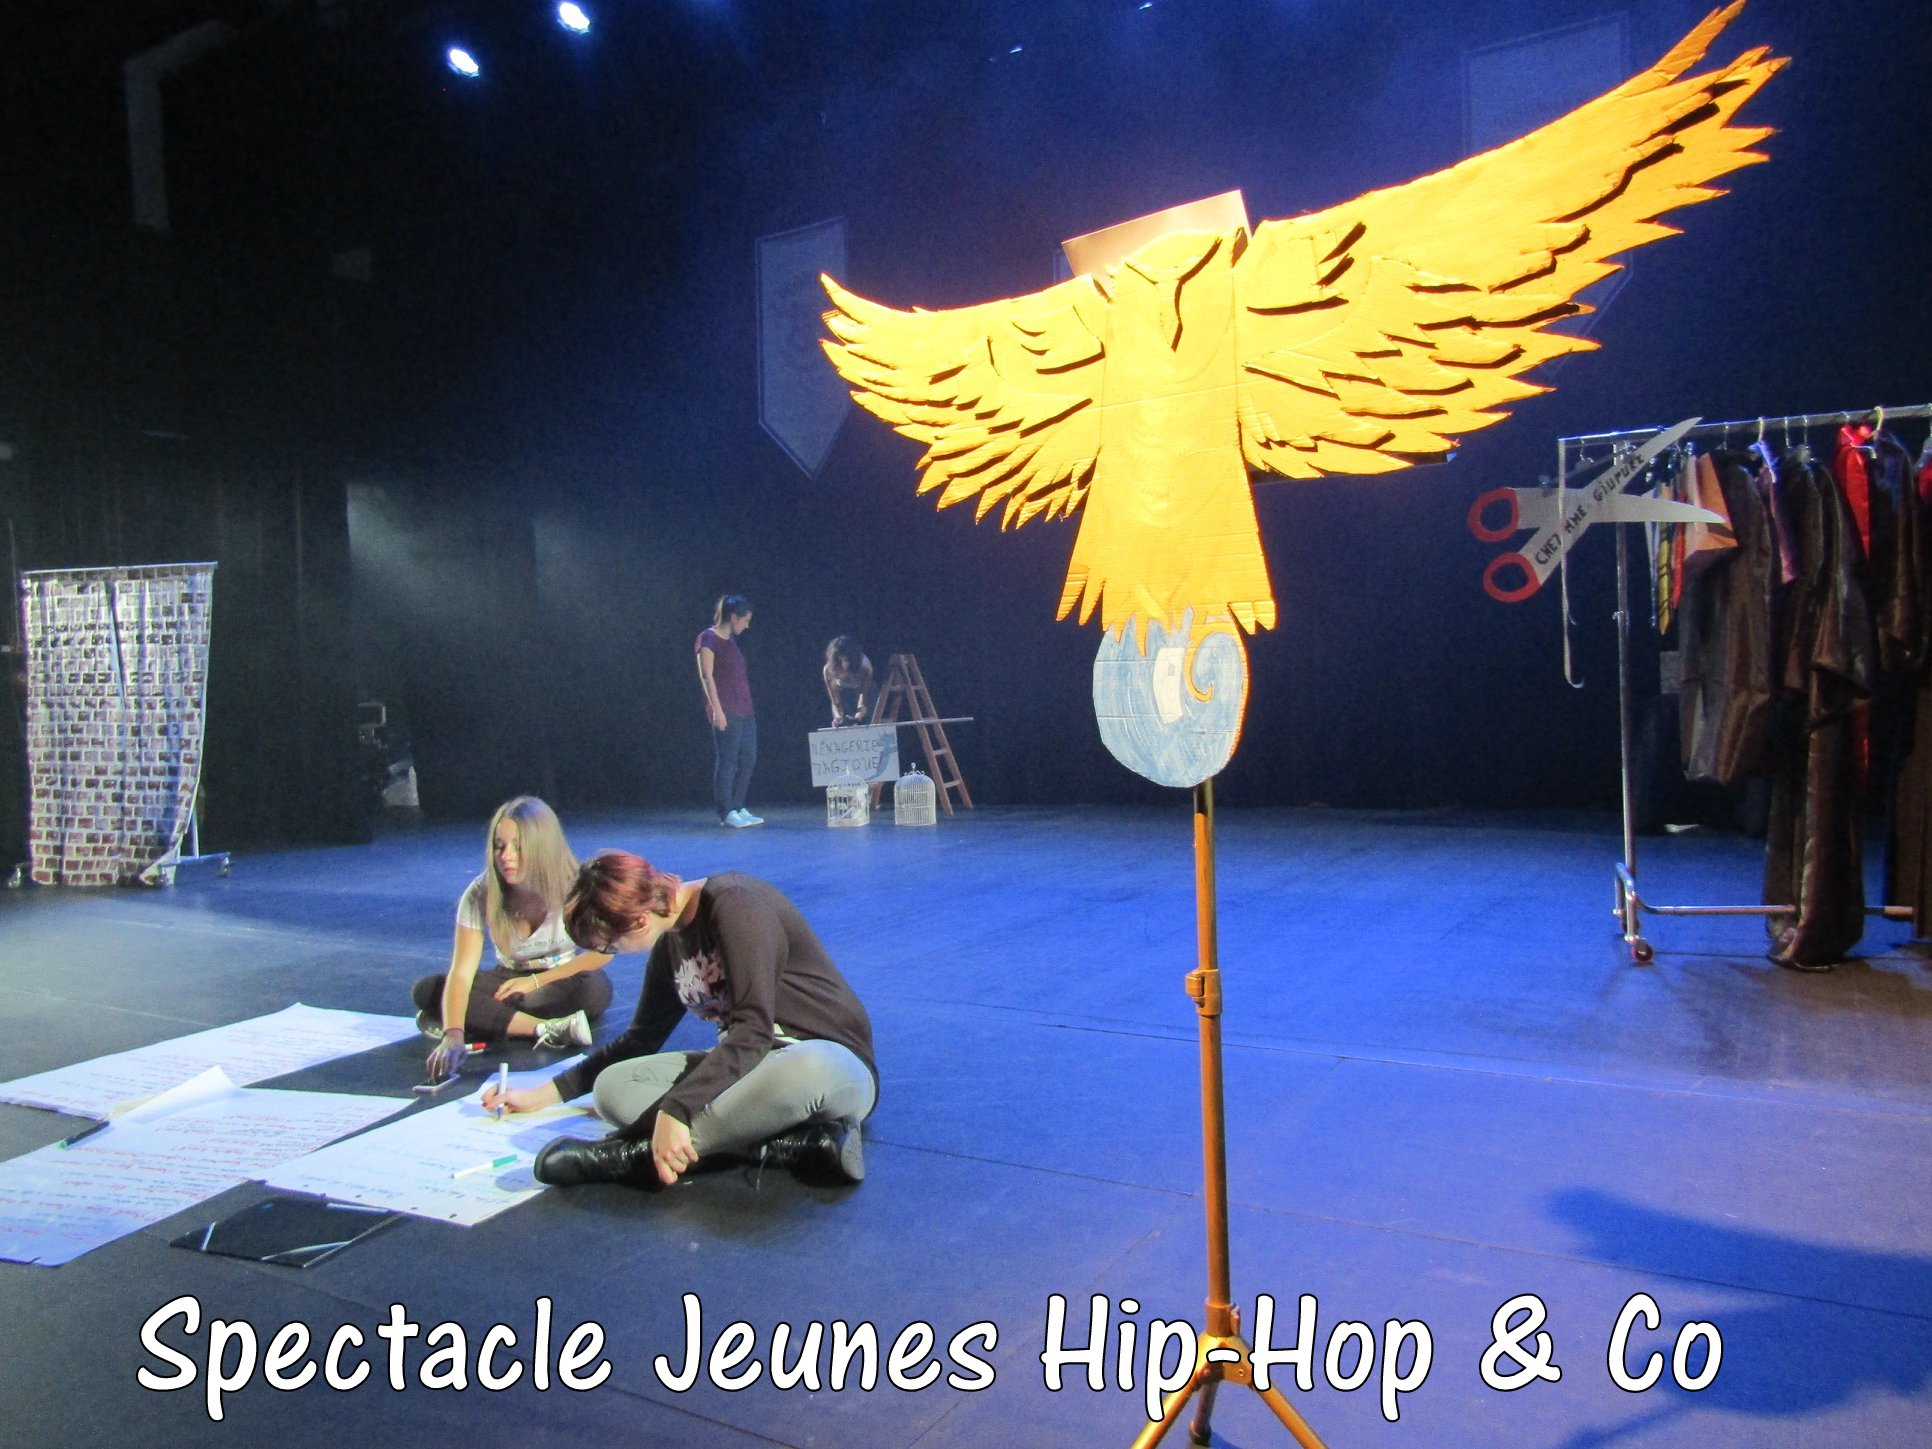 spectacle-jeunes-Hip-Hop-Co-1